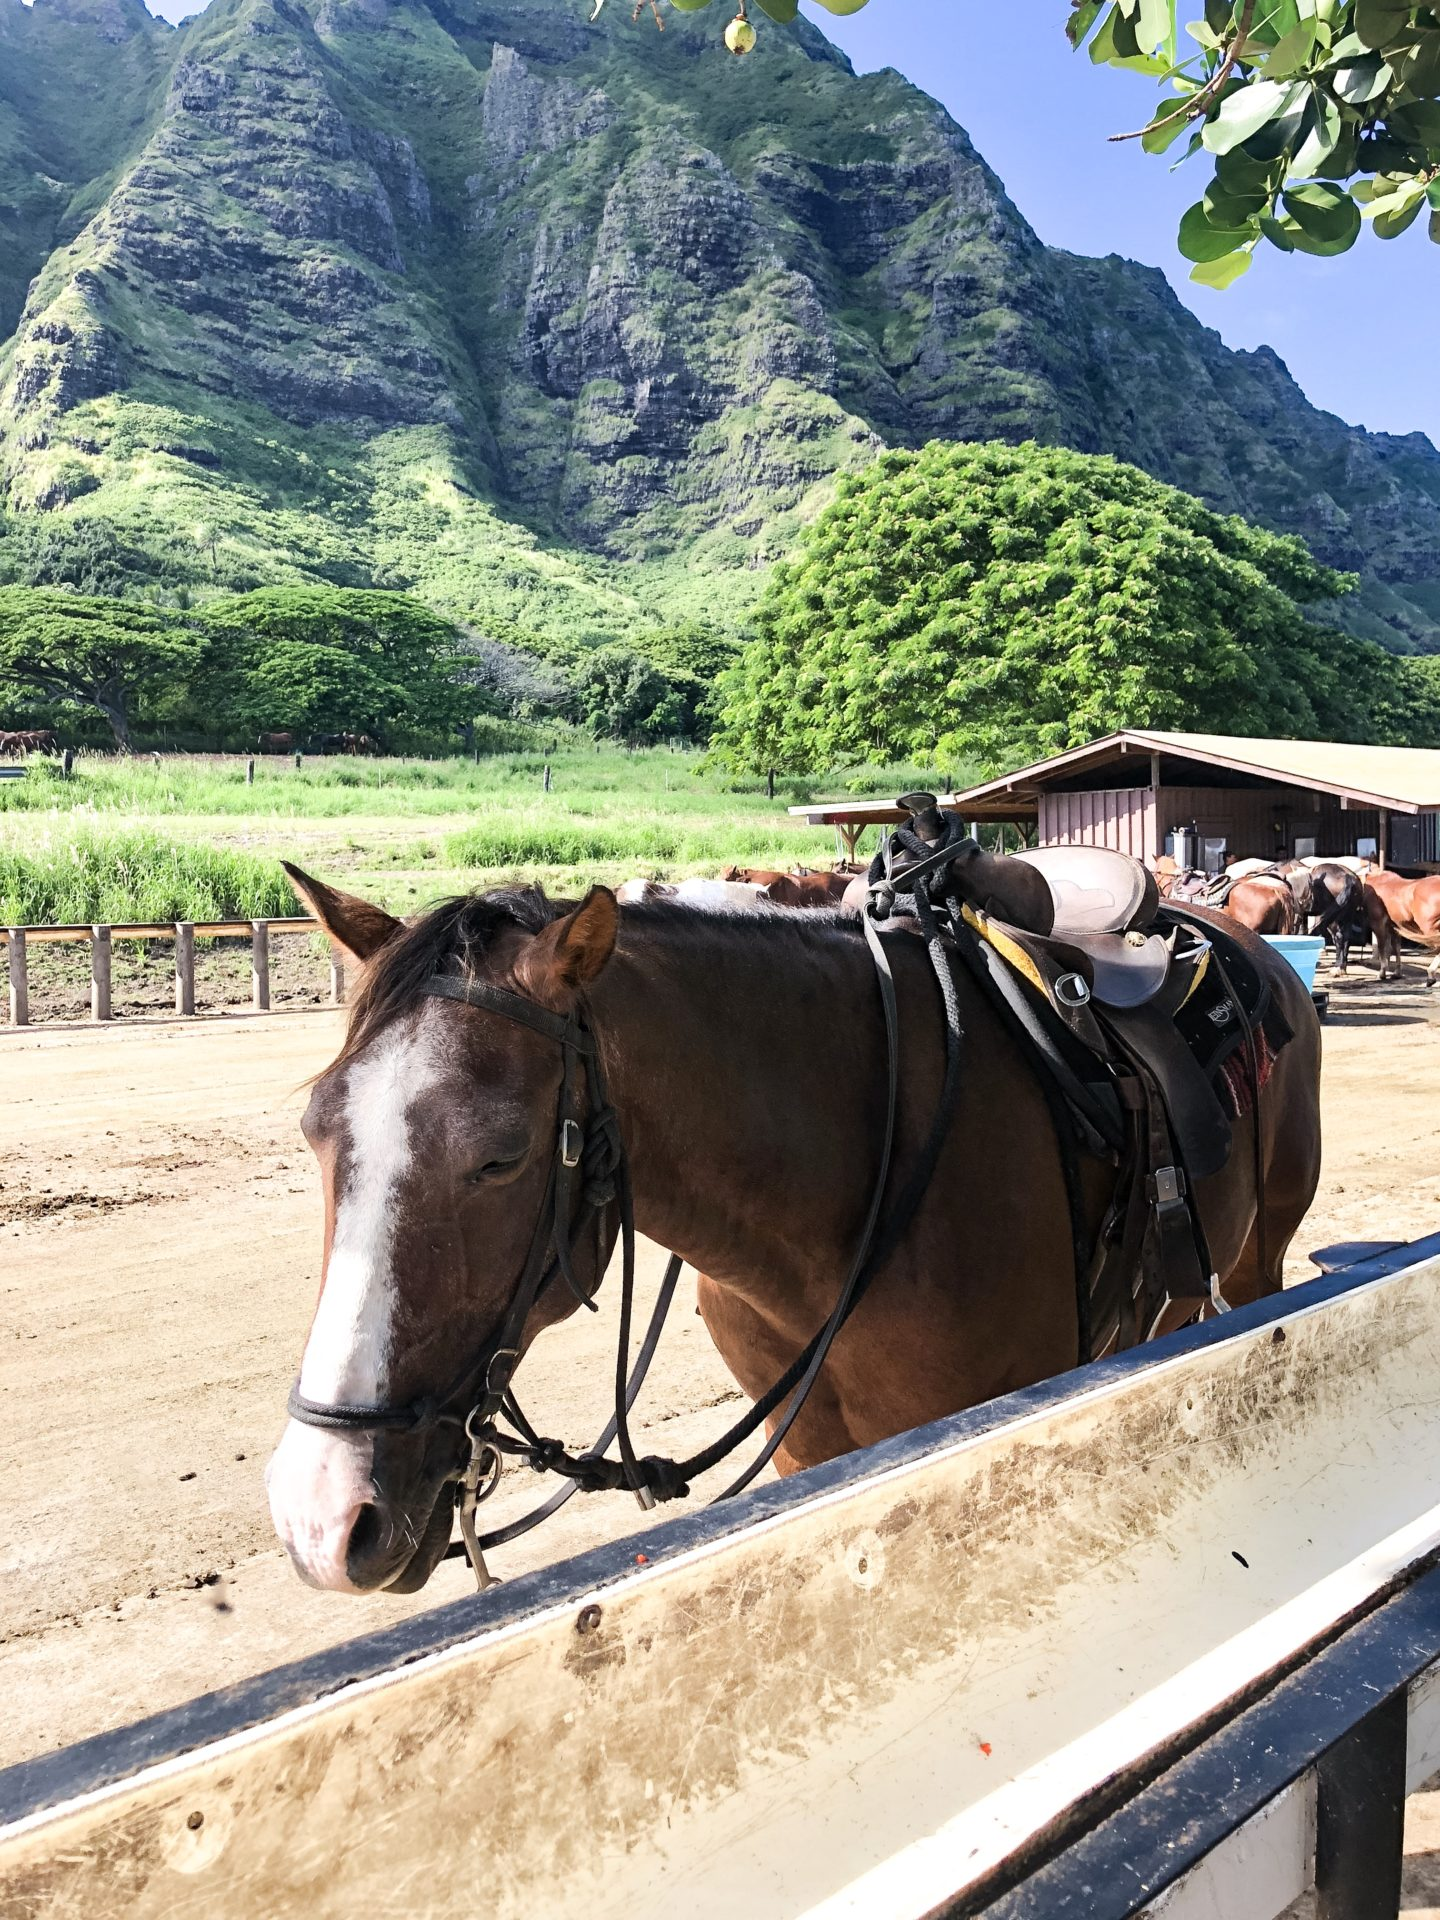 Fifteen Minutes to Flawless Kualoa Ranch Review